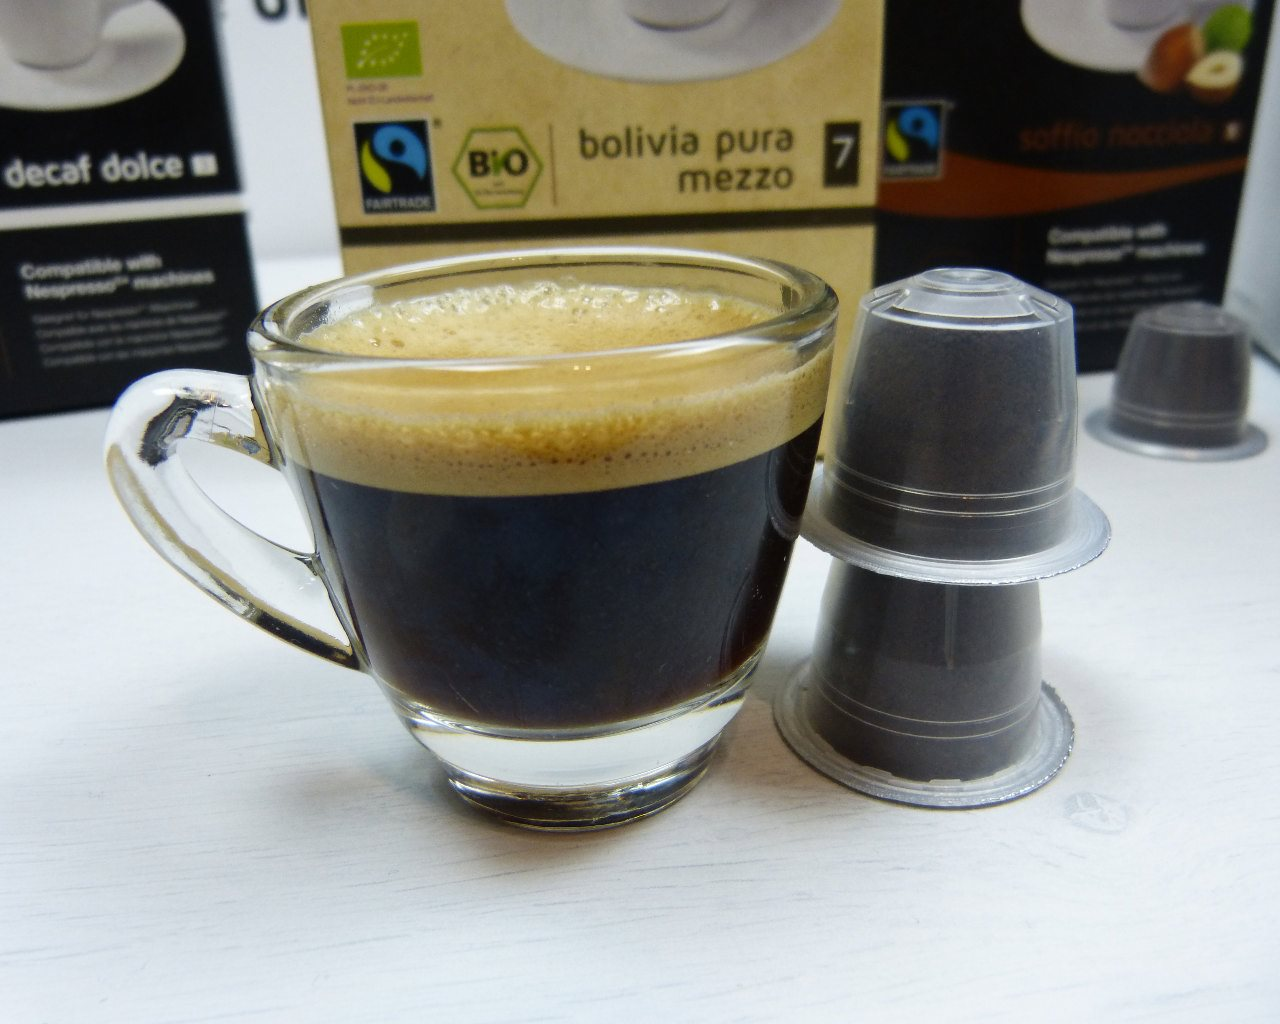 gourmesso kaffeekapseln im test kompatibel mit nespresso023 kapsel. Black Bedroom Furniture Sets. Home Design Ideas